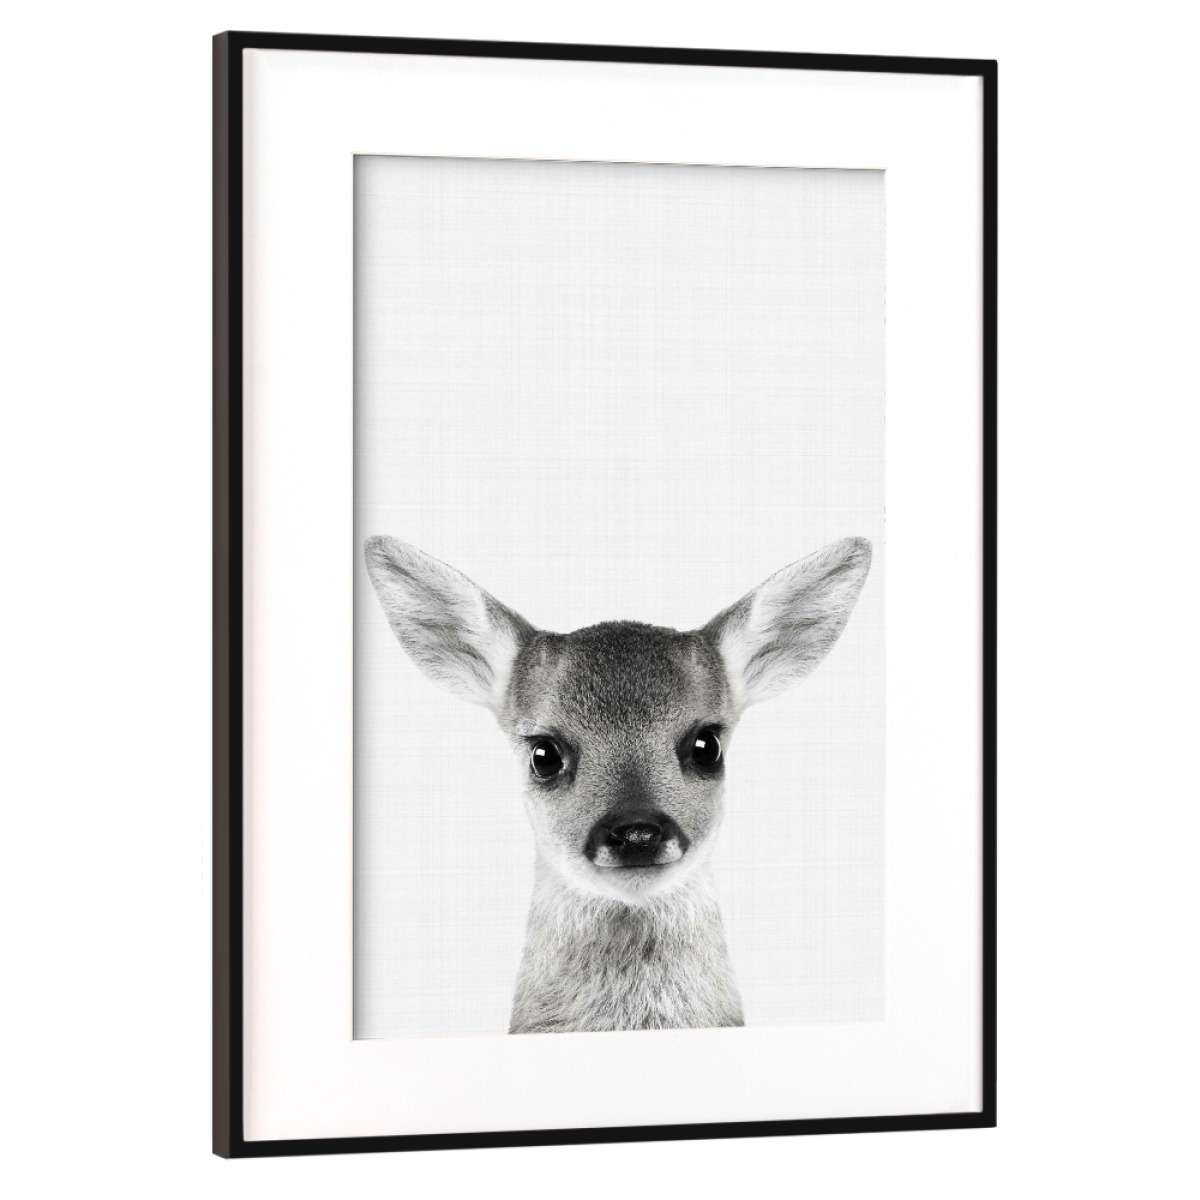 Purchase the Deer (Fawn) Portrait as a Frame at artboxONE